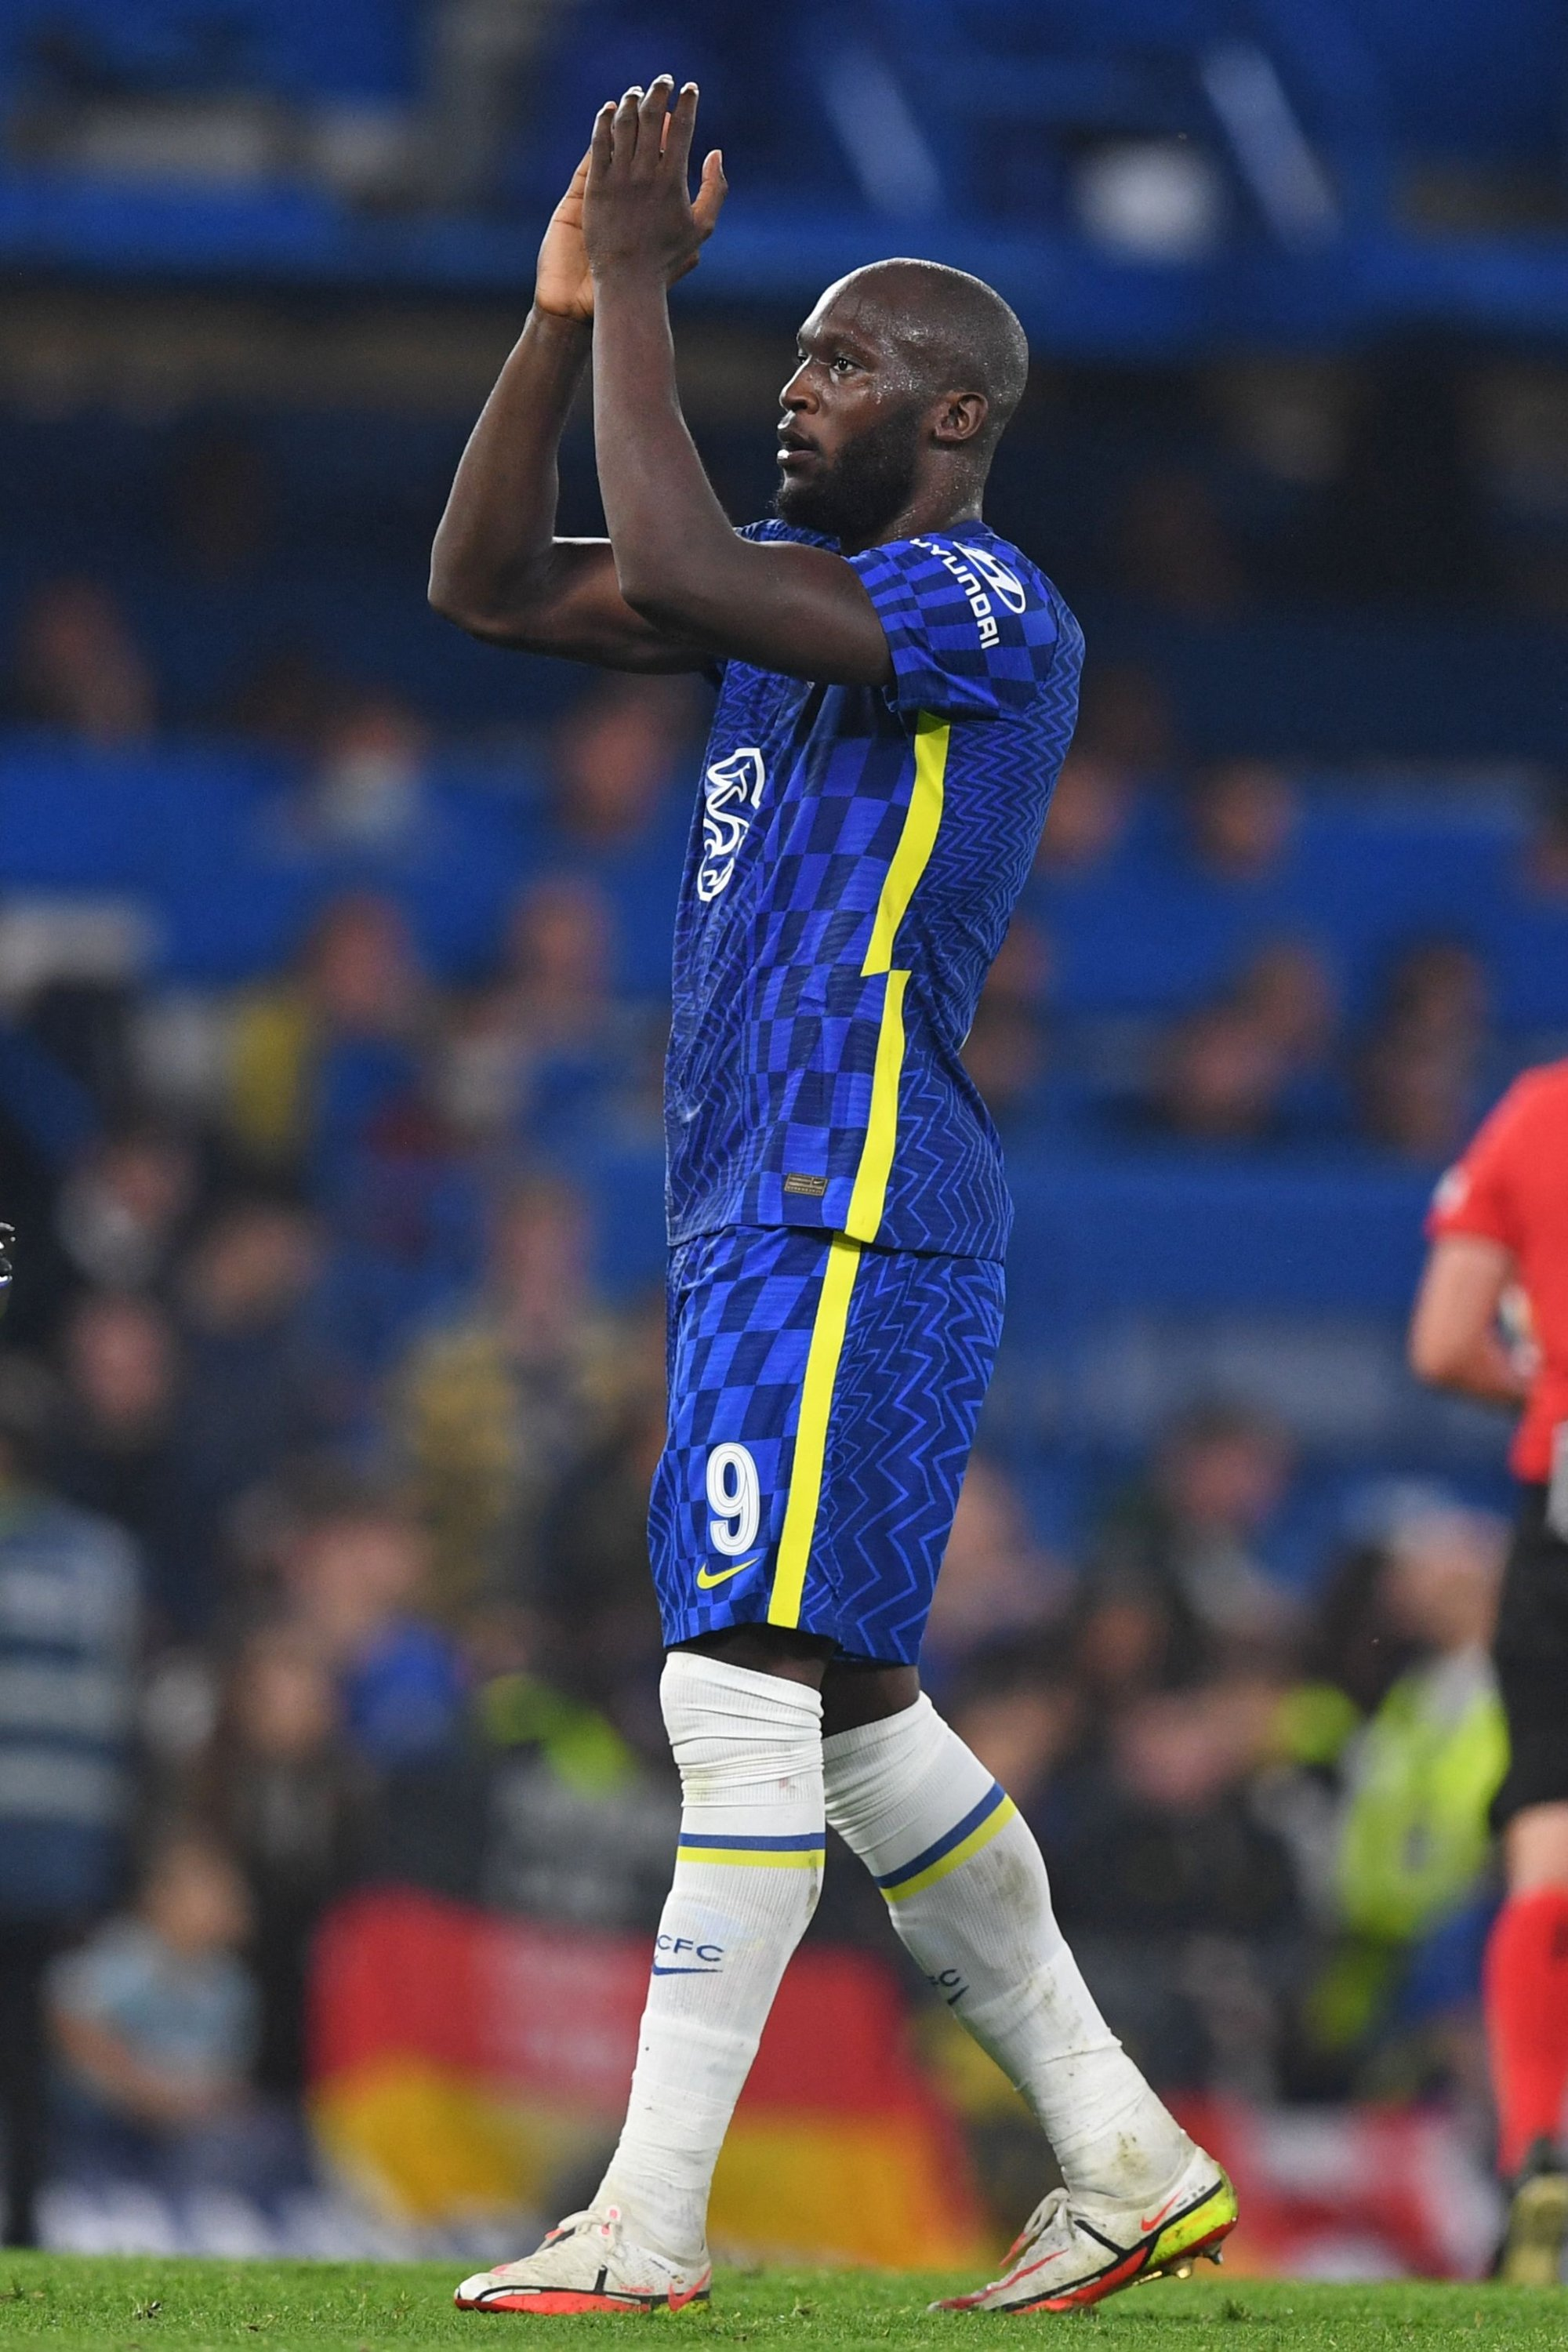 Chelsea's Romelu Lukaku applauds supporters on the pitch after a Champions League Group H match against Zenit St. Petersburg at Stamford Bridge in London, England, Sept. 14, 2021. (AFP Photo)